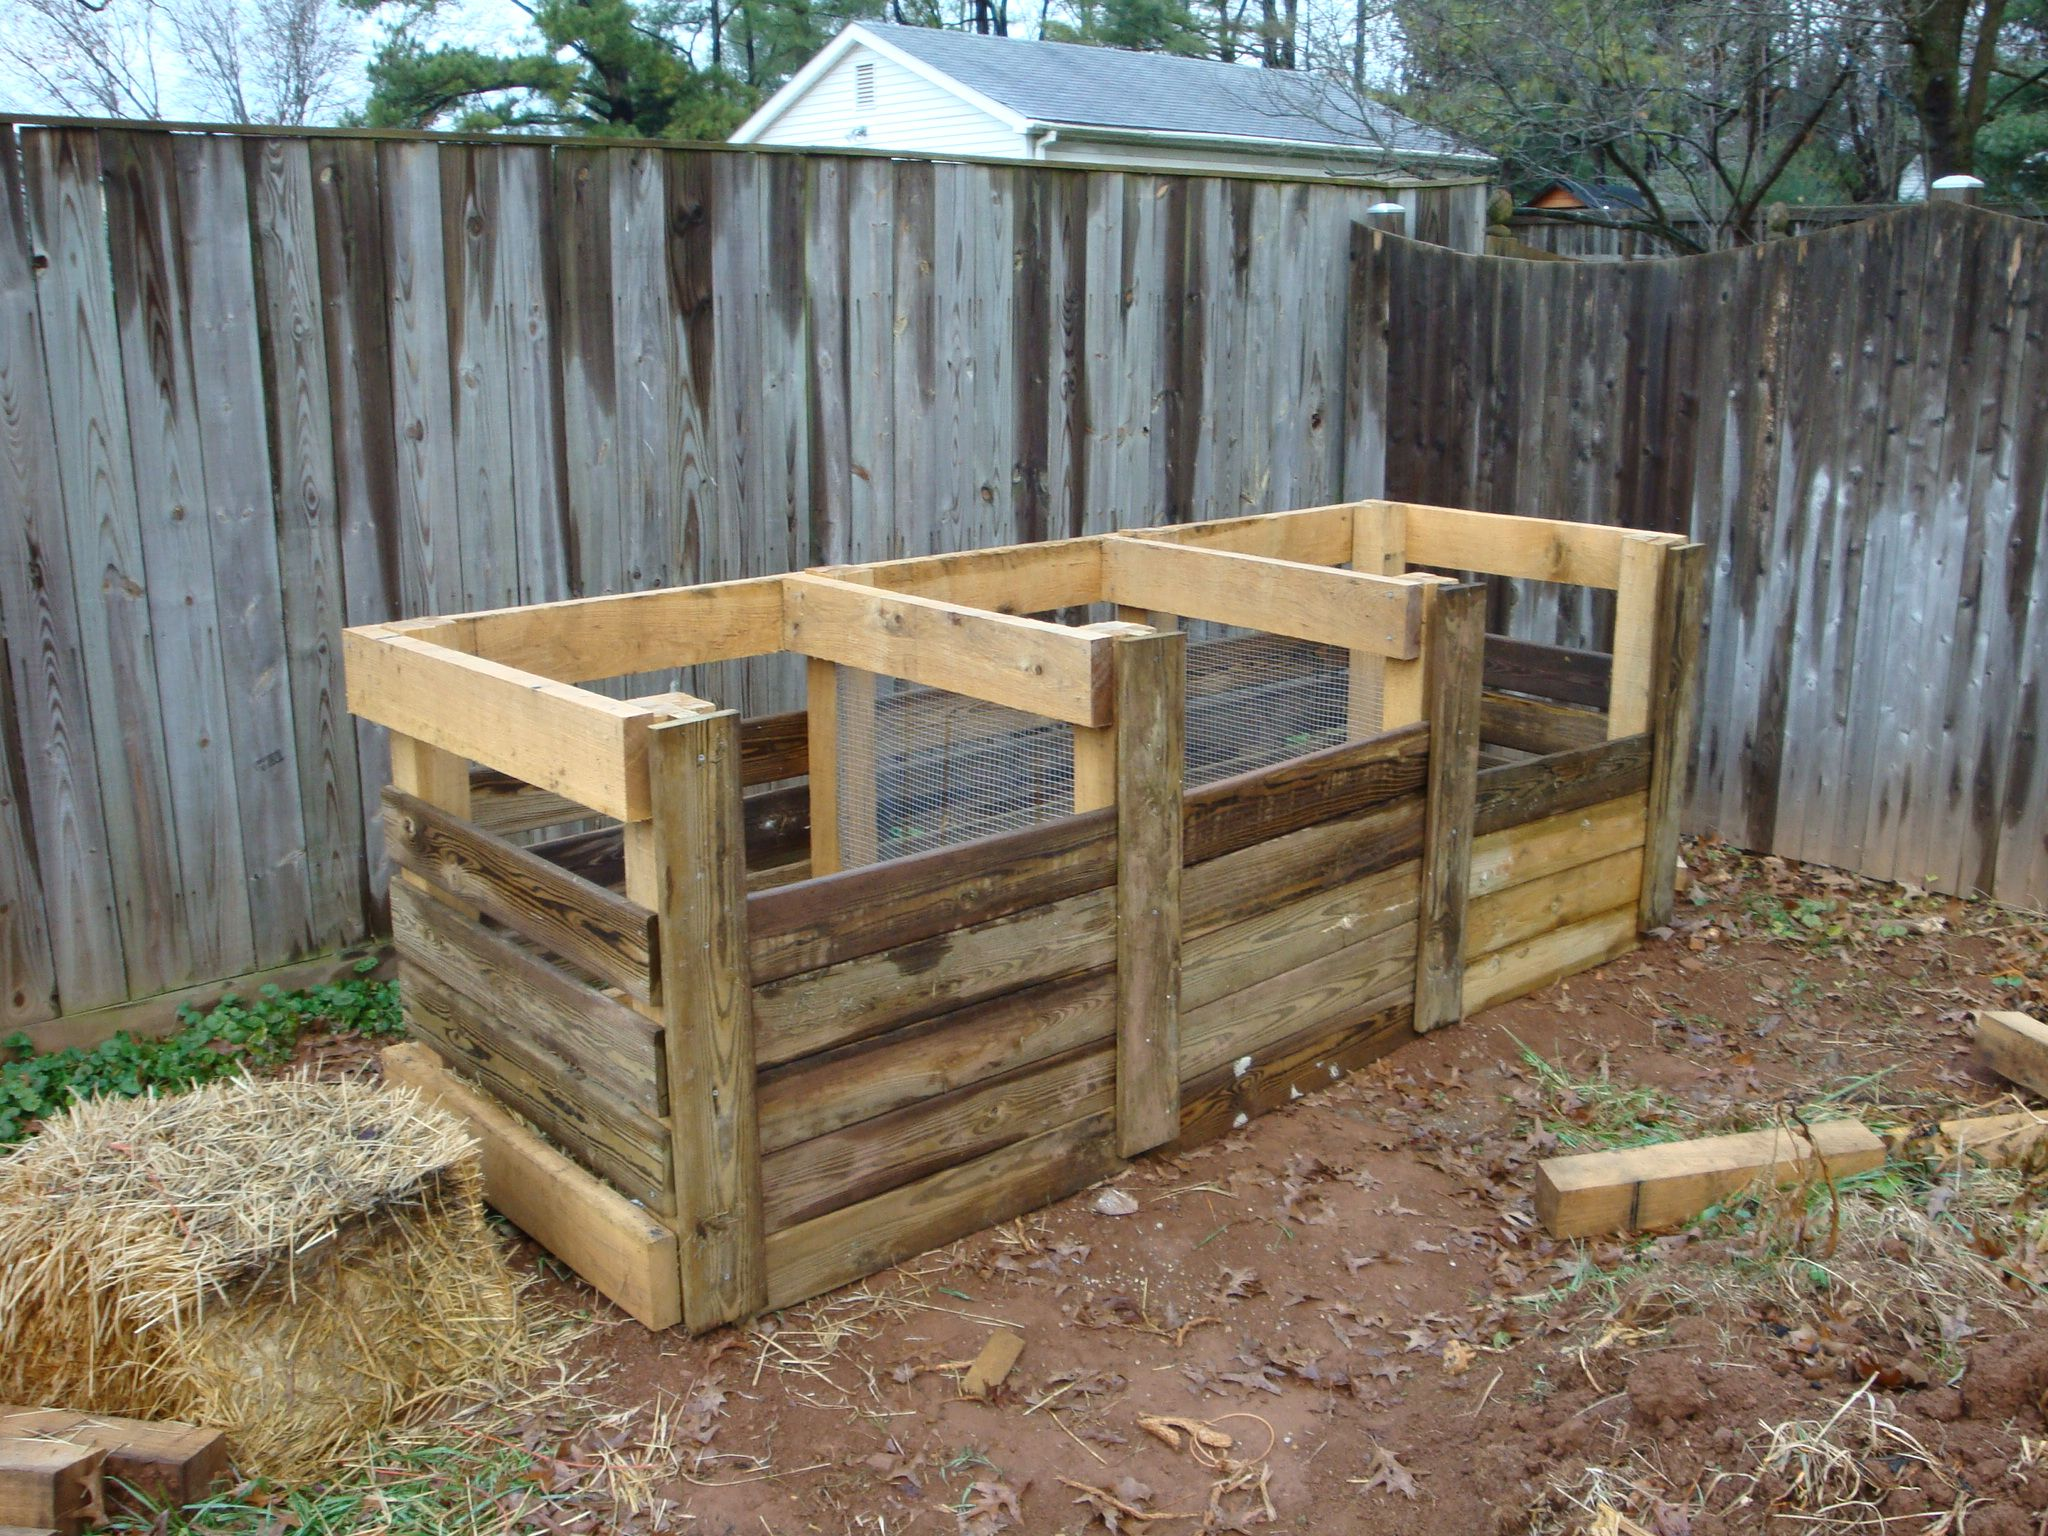 Diy Compost Bin Plans My Compost Bin Plans G R O W And S T O R E Compost